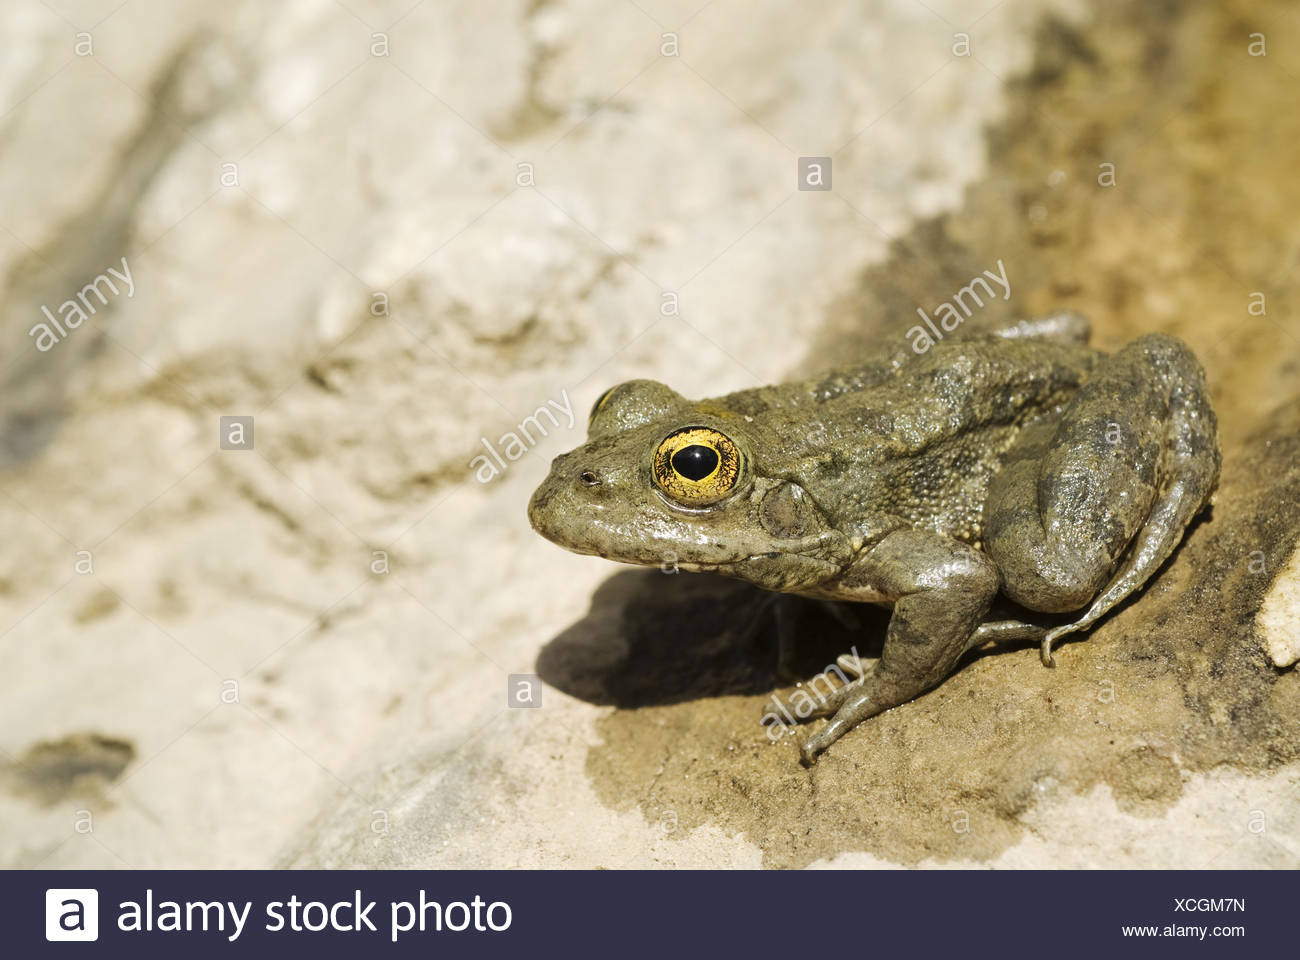 Karpathos waterfrog (Rana cerigensis), endemic, Greece, Krpathos Stock Photo